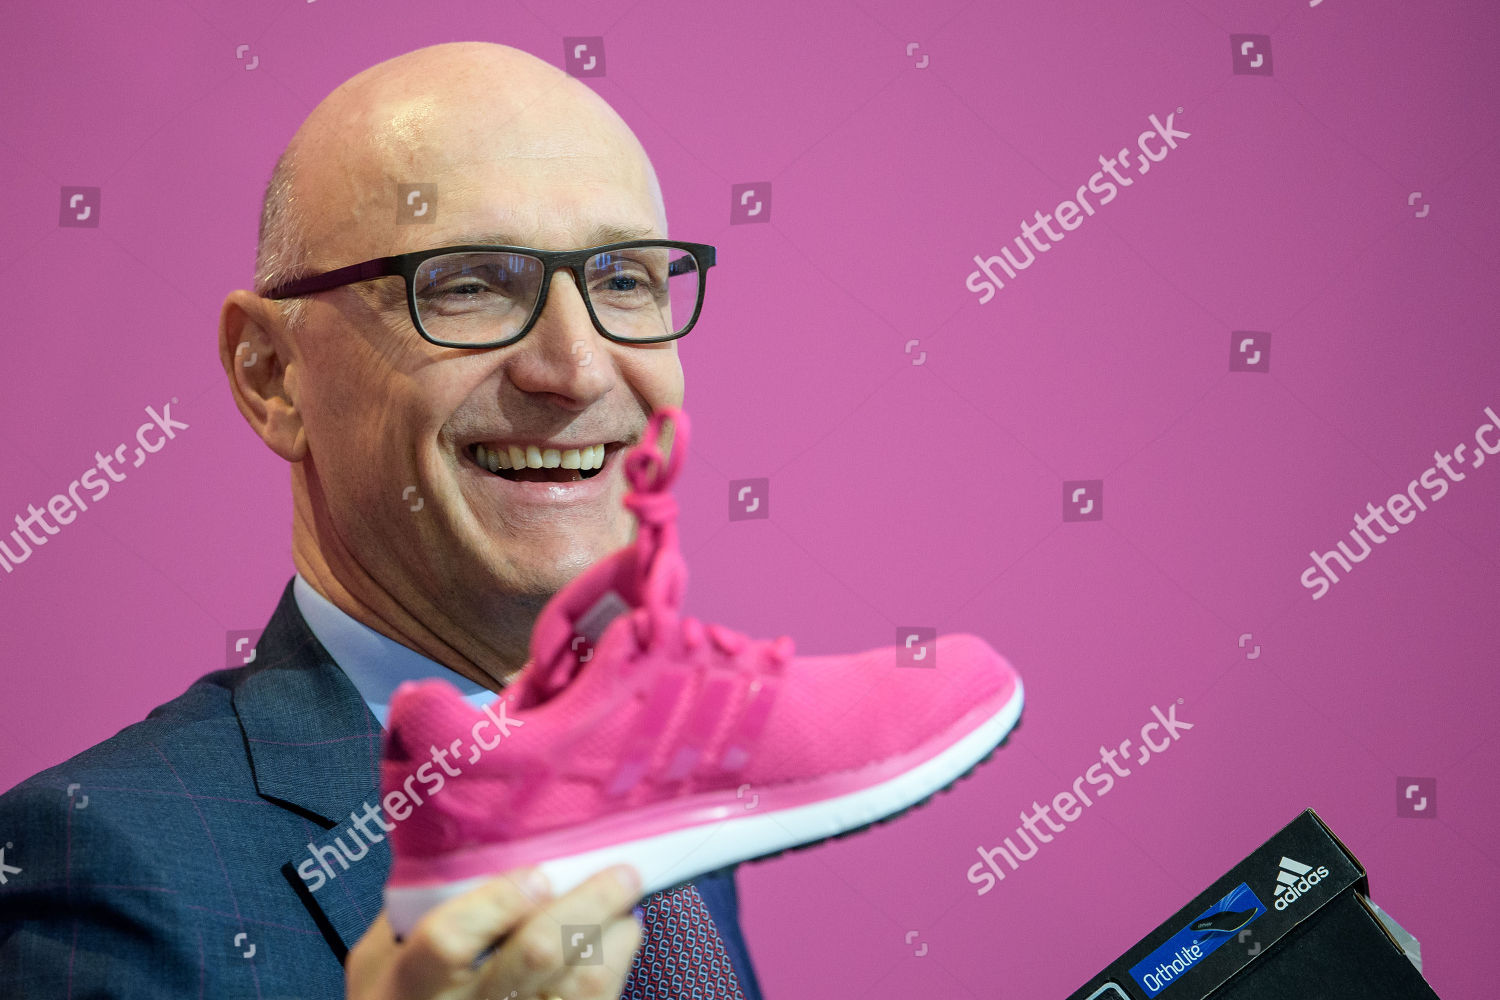 Holds Timotheus Ag Telekom Stock Ceo Deutsche Hoettges